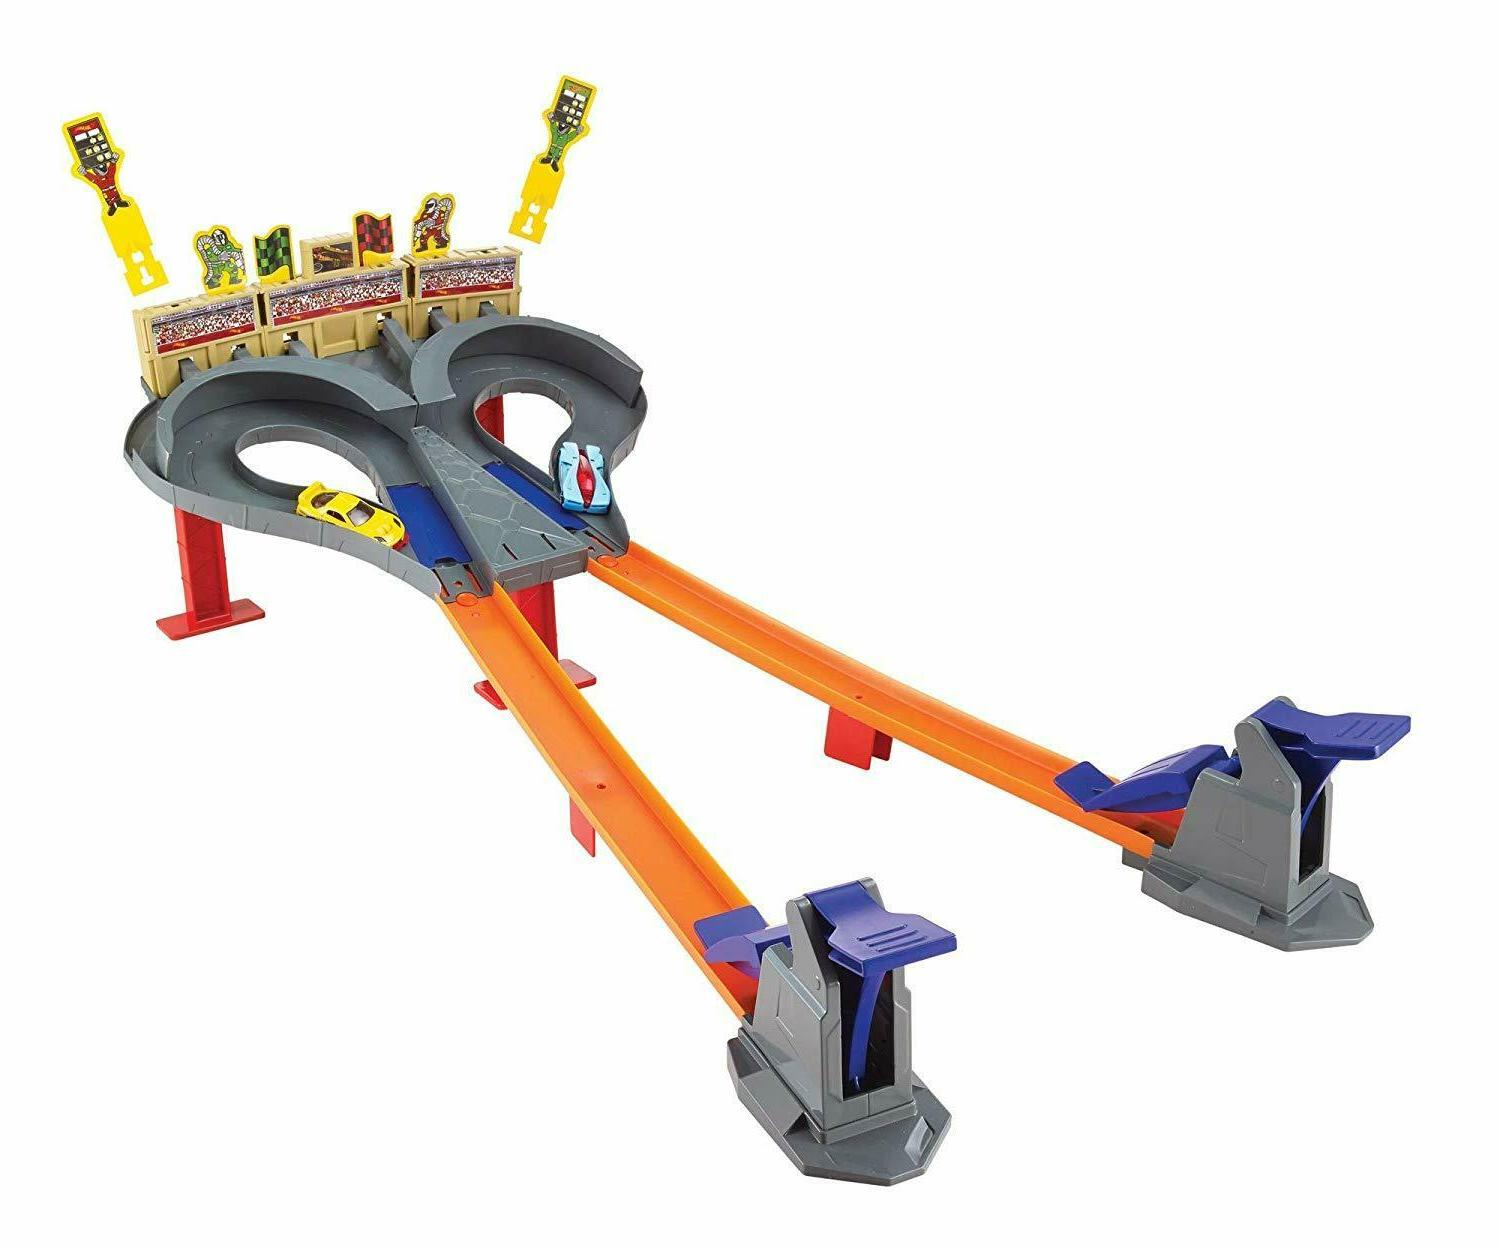 NEW Multiplayer Hot Wheels Cars Track Gift